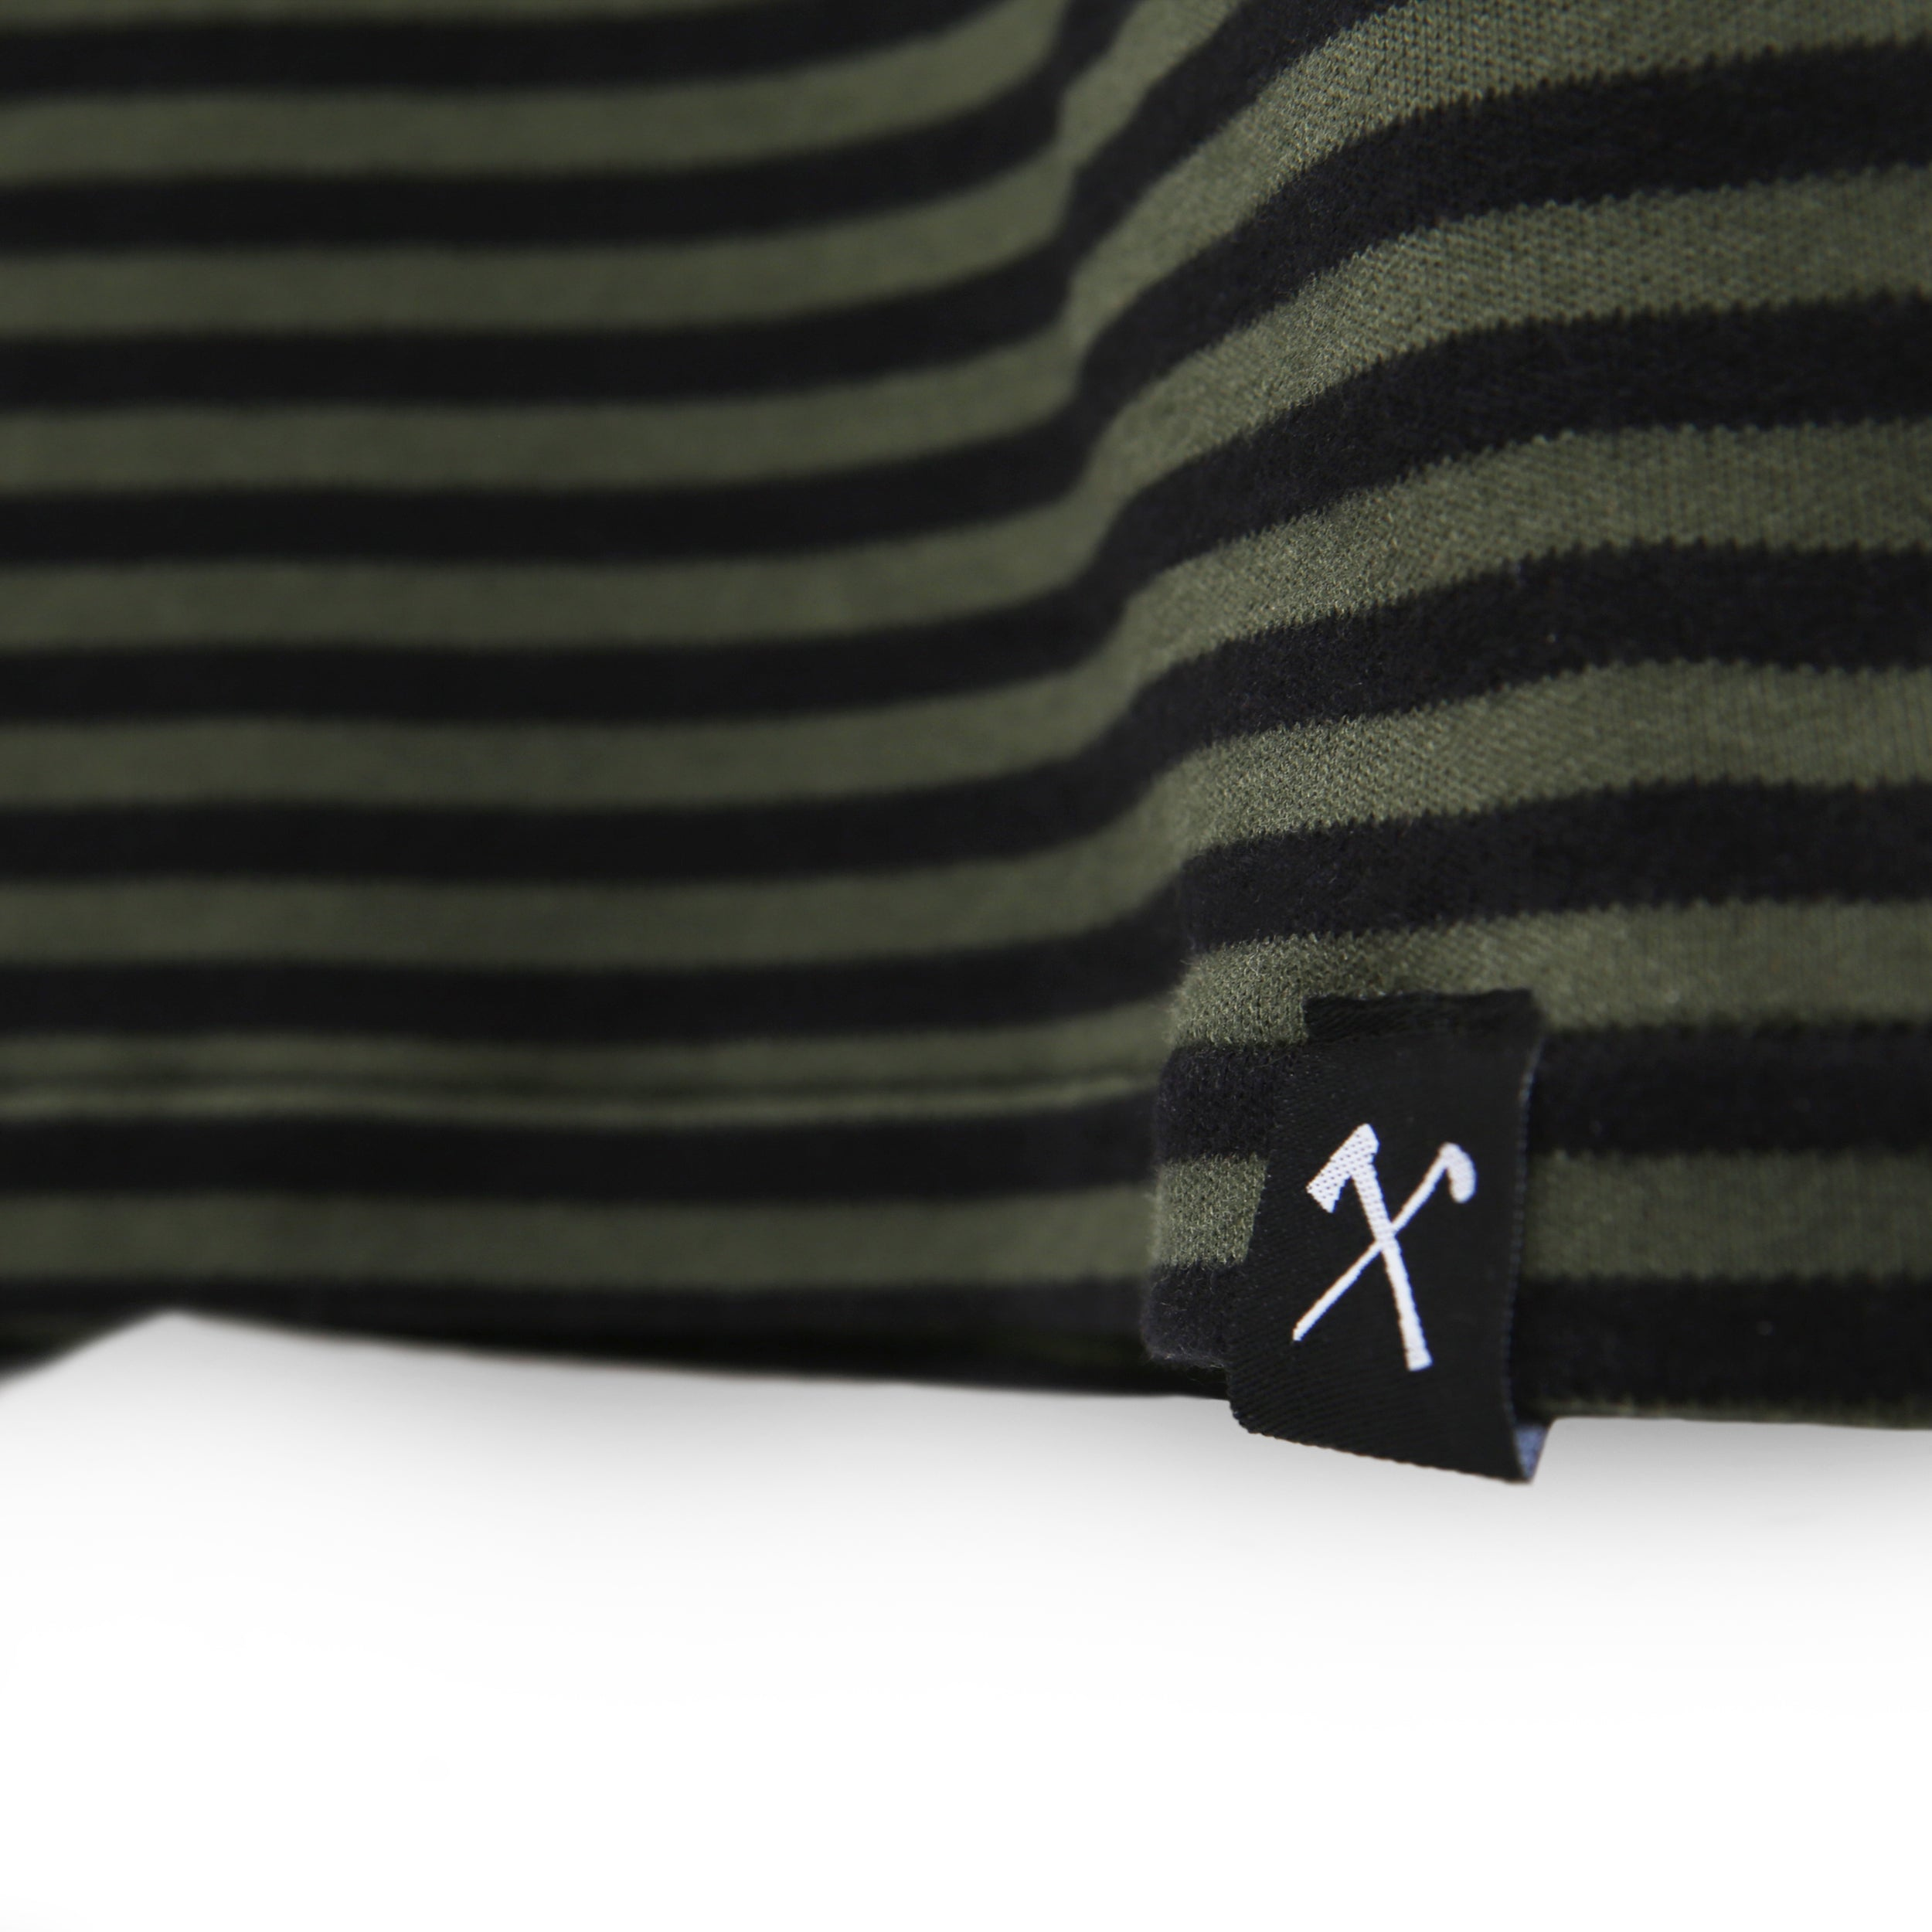 Dress - striped jersey fabric - Army/Blackº